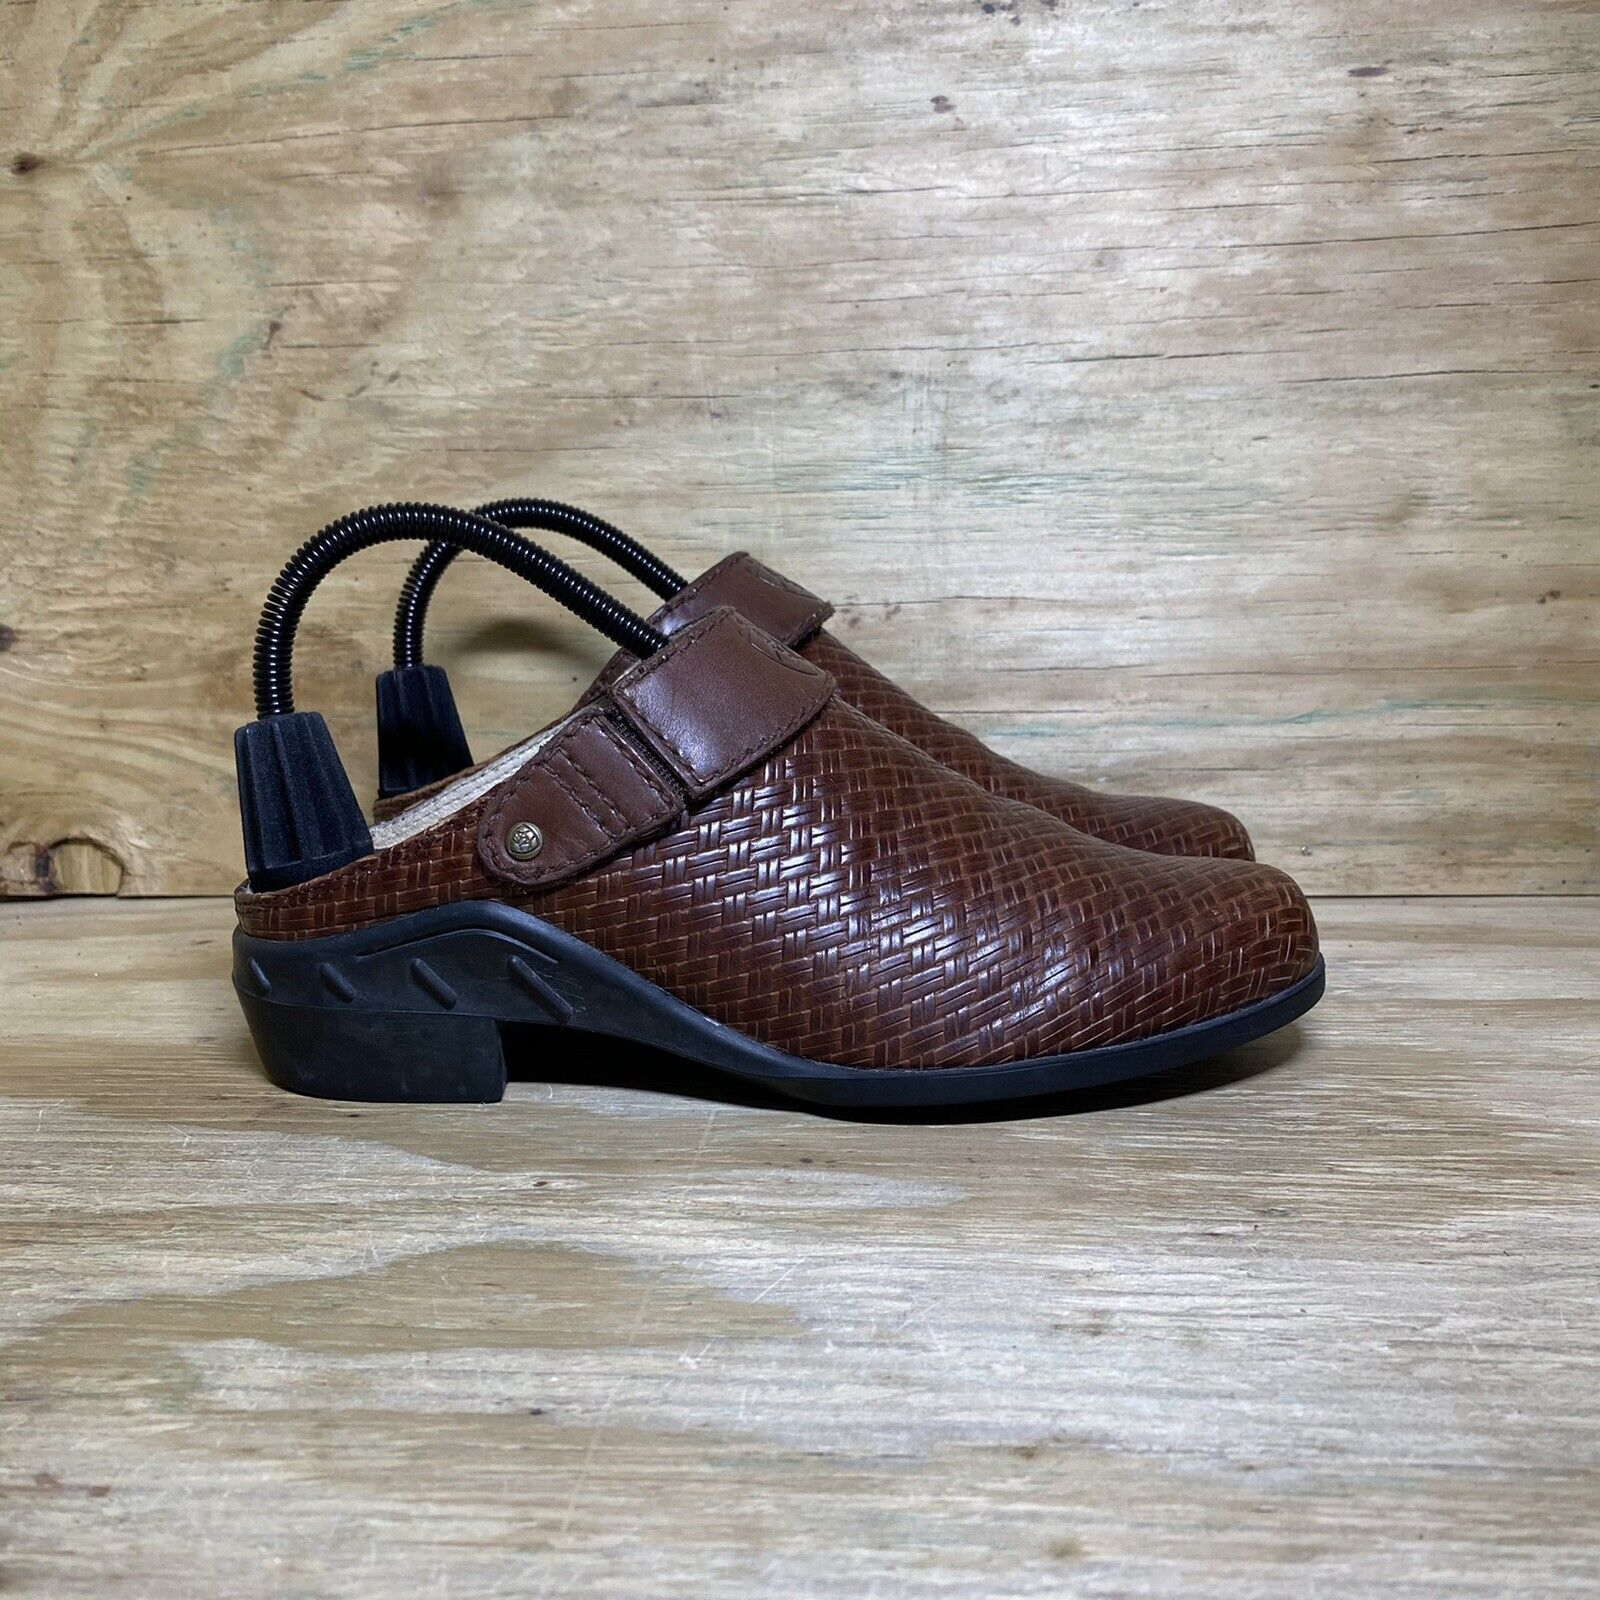 Ariat ATS Basket Weave Leather Strap Mule (94024) Shoes, Women's Size 8.5, Brown